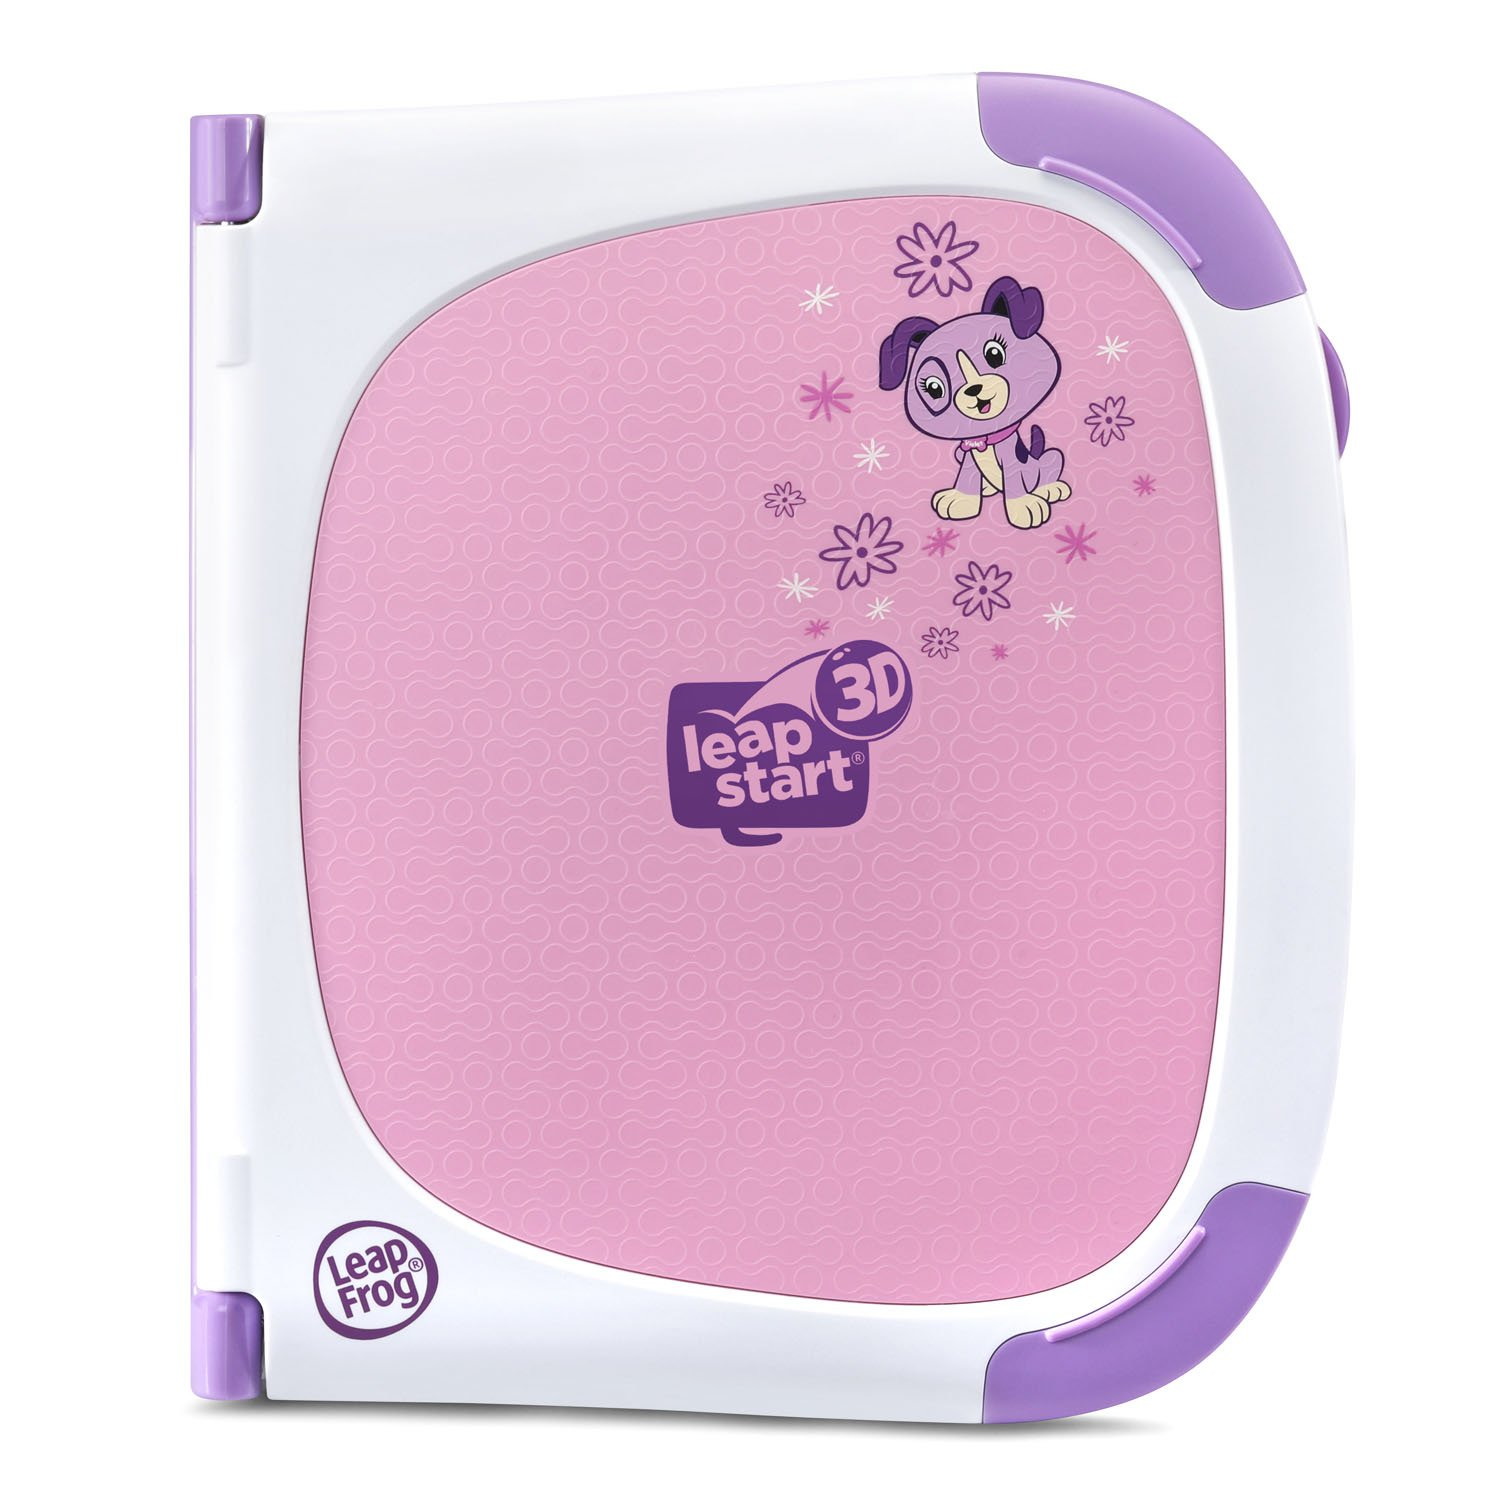 LeapFrog LeapStart 3D Interactive Learning System Amazon Exclusive, Violet by LeapFrog (Image #8)